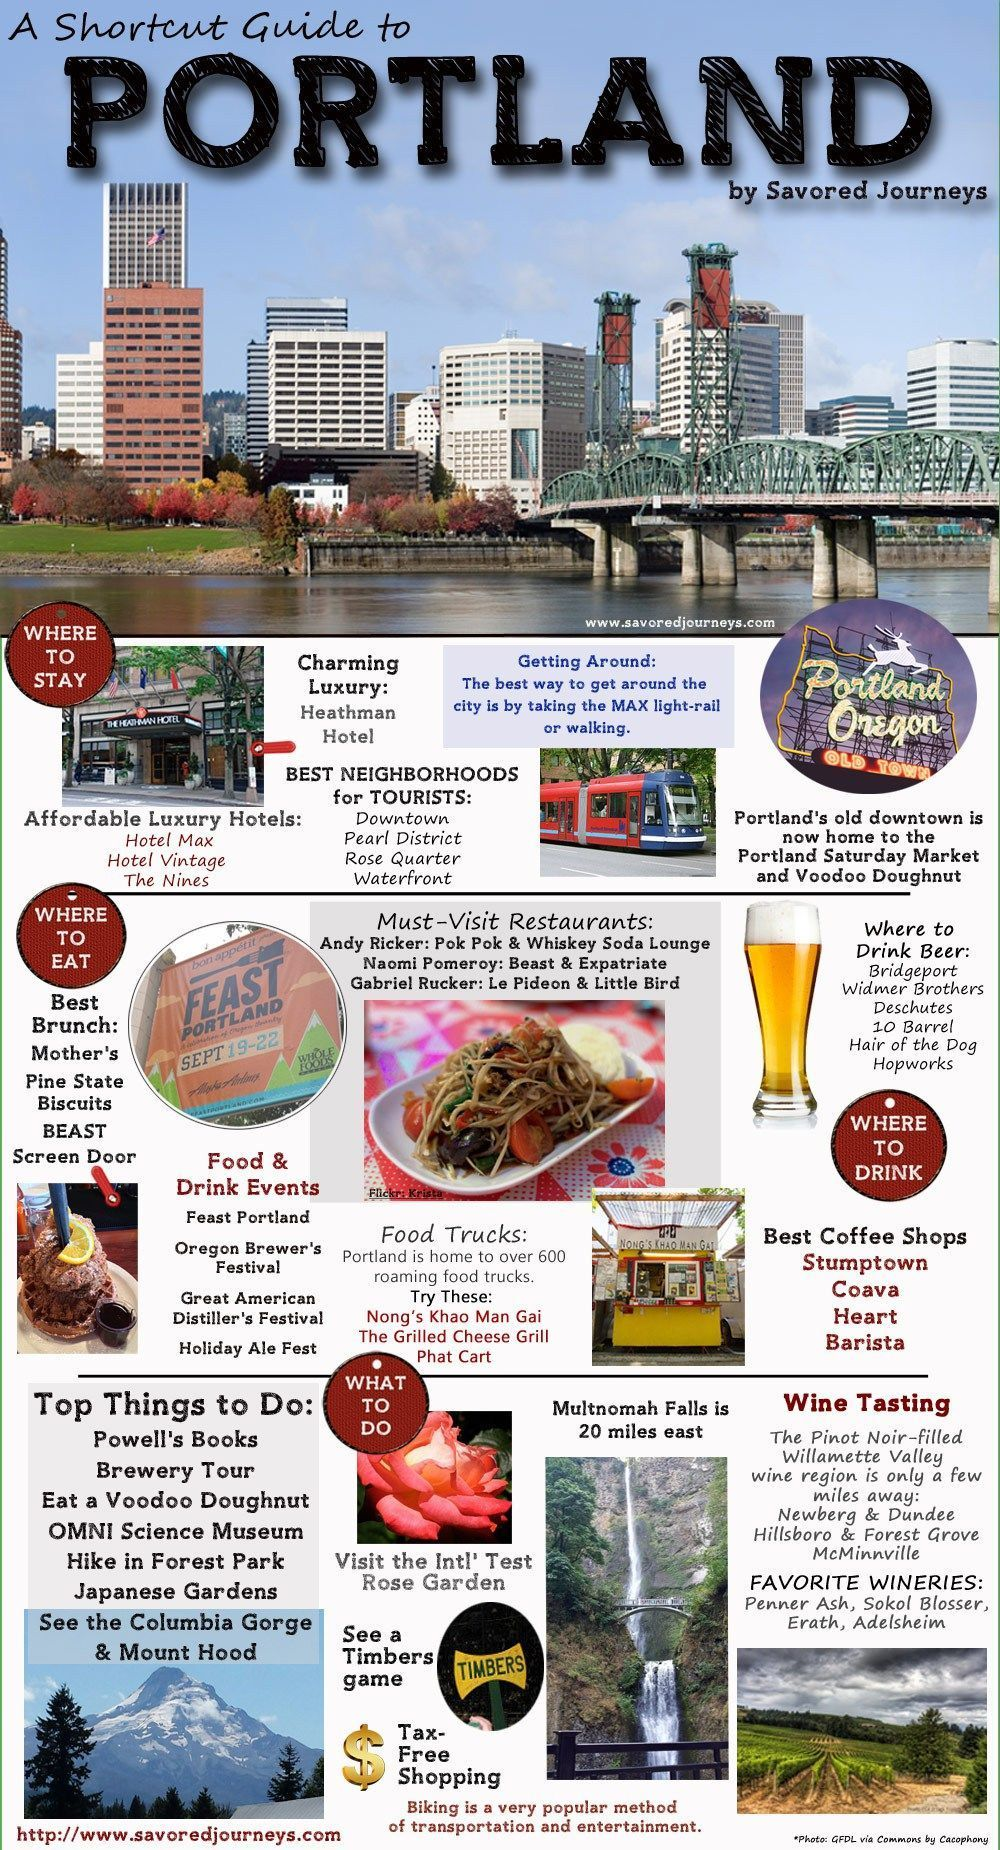 Your one-stop quick guide to everything you must see, do, eat and drink in Portland, Oregon #portlan...